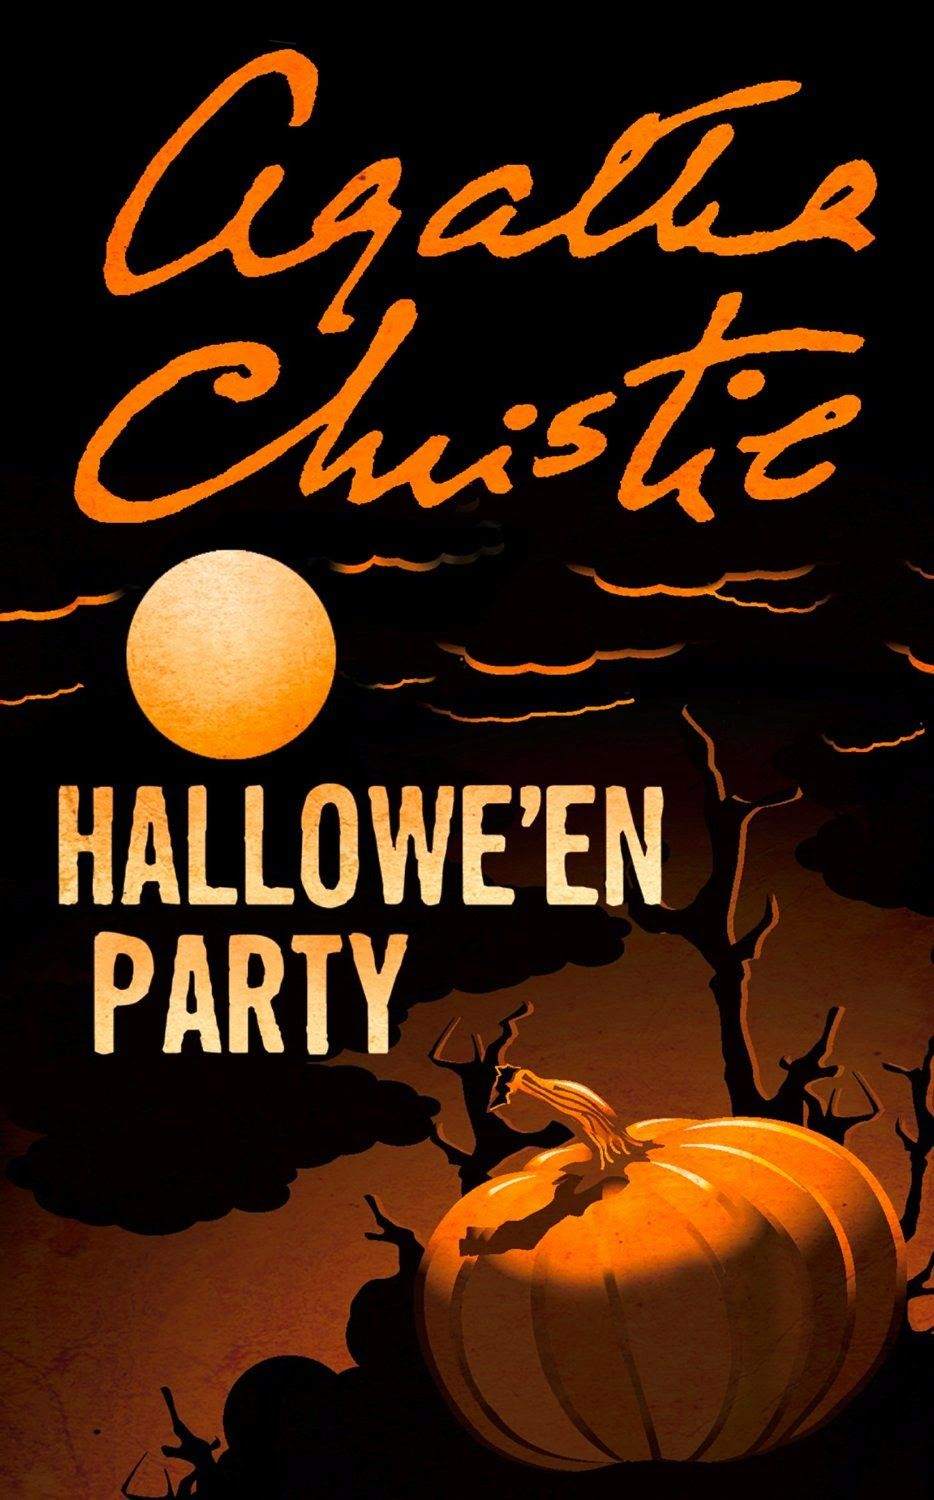 http://mazaj3.blogspot.com/2015/03/agatha-christie-halloween-party ...